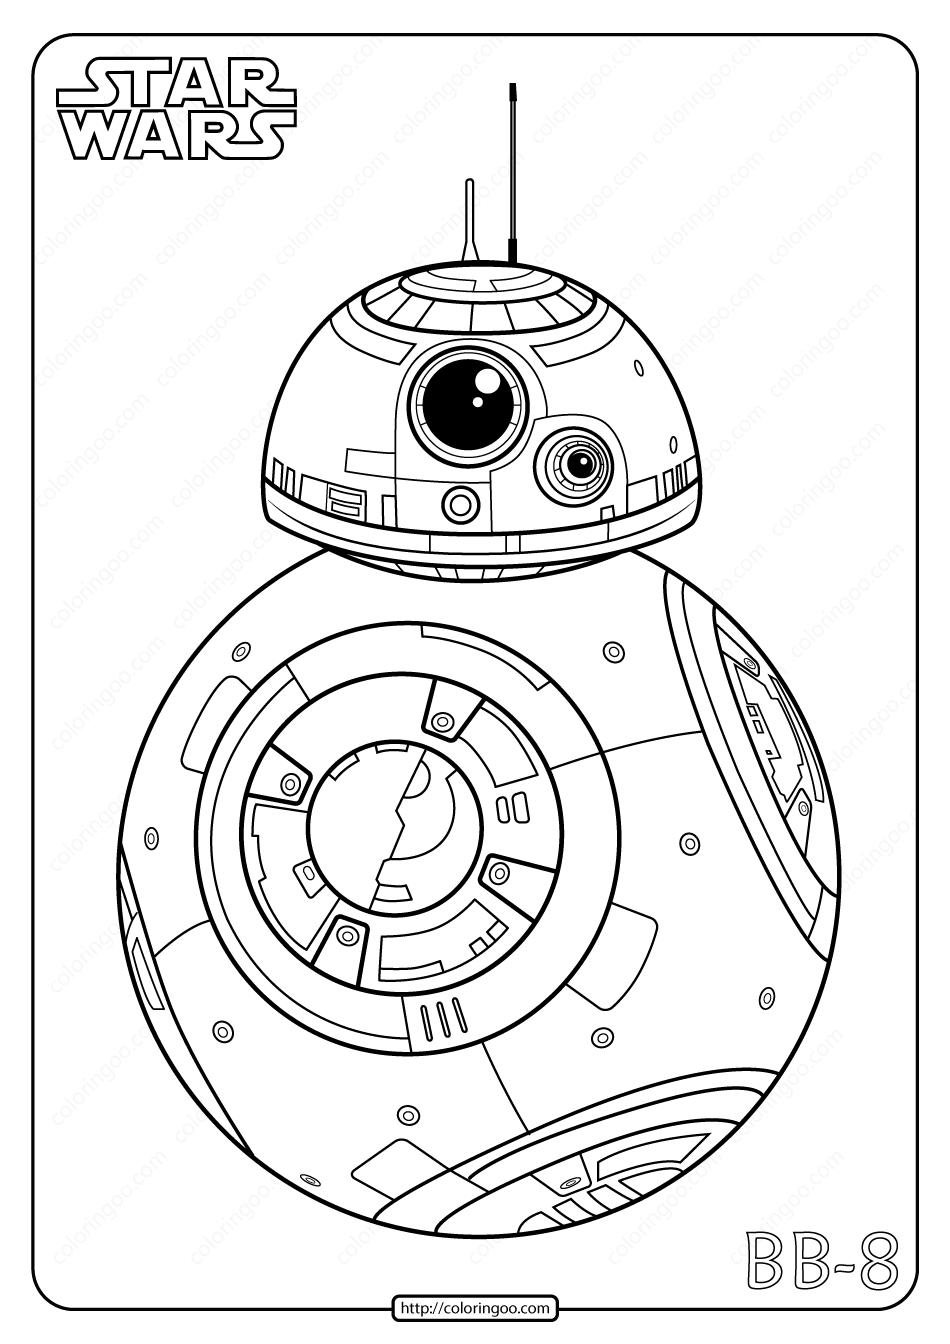 Printable Star Wars BB8 Coloring Pages - Star Wars Bb8 ...